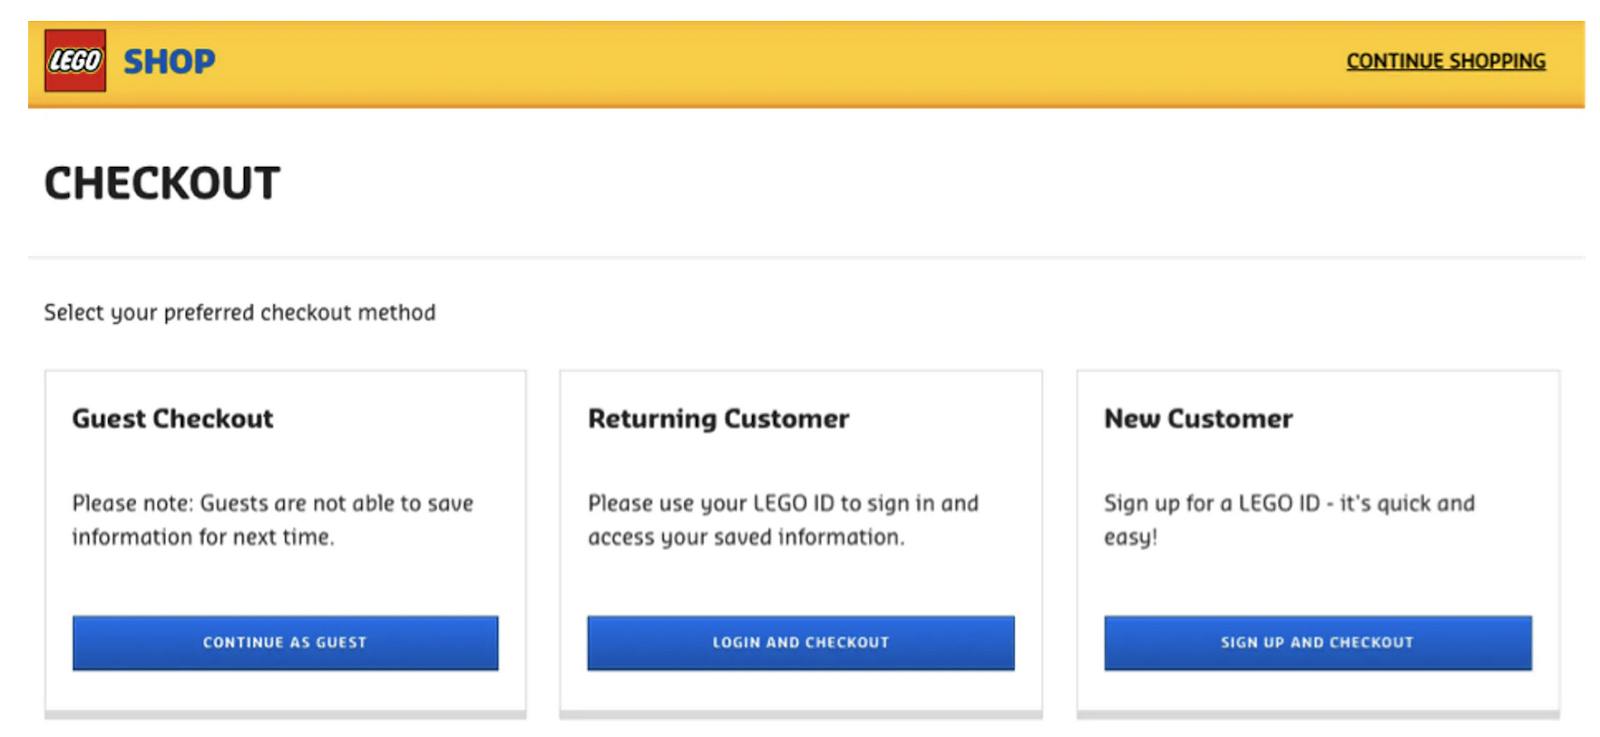 Lego offers multiple checkout methods